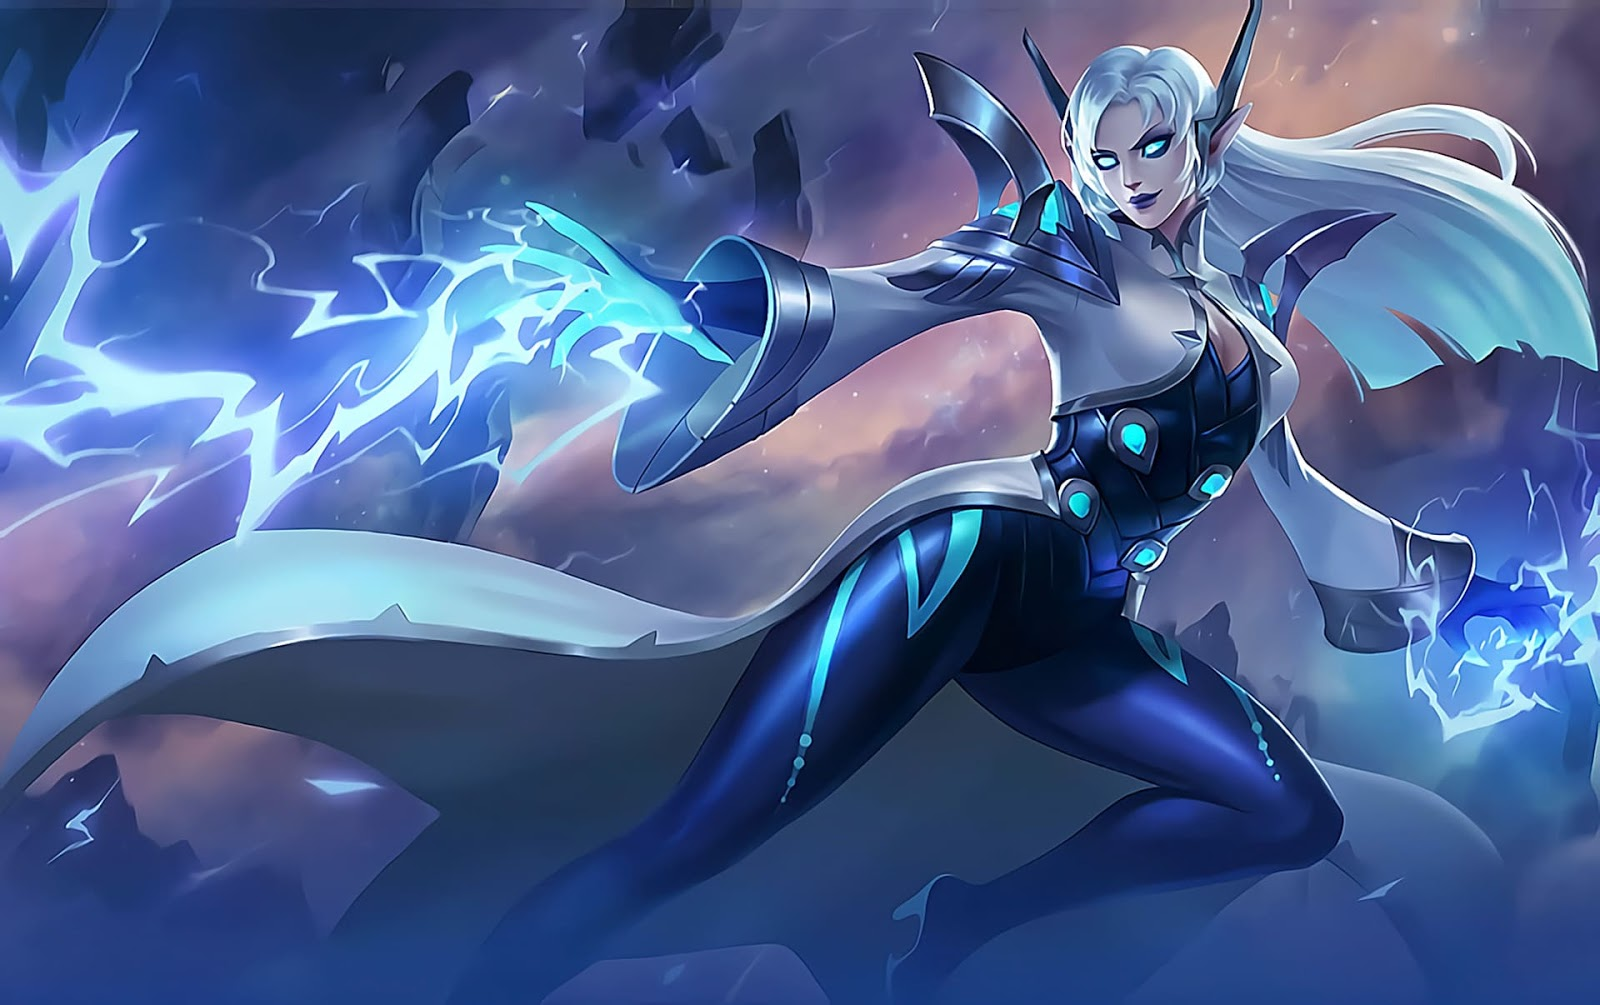 Wallpaper Eudora Lightning Sorceress Skins Mobile Legends HD for PC